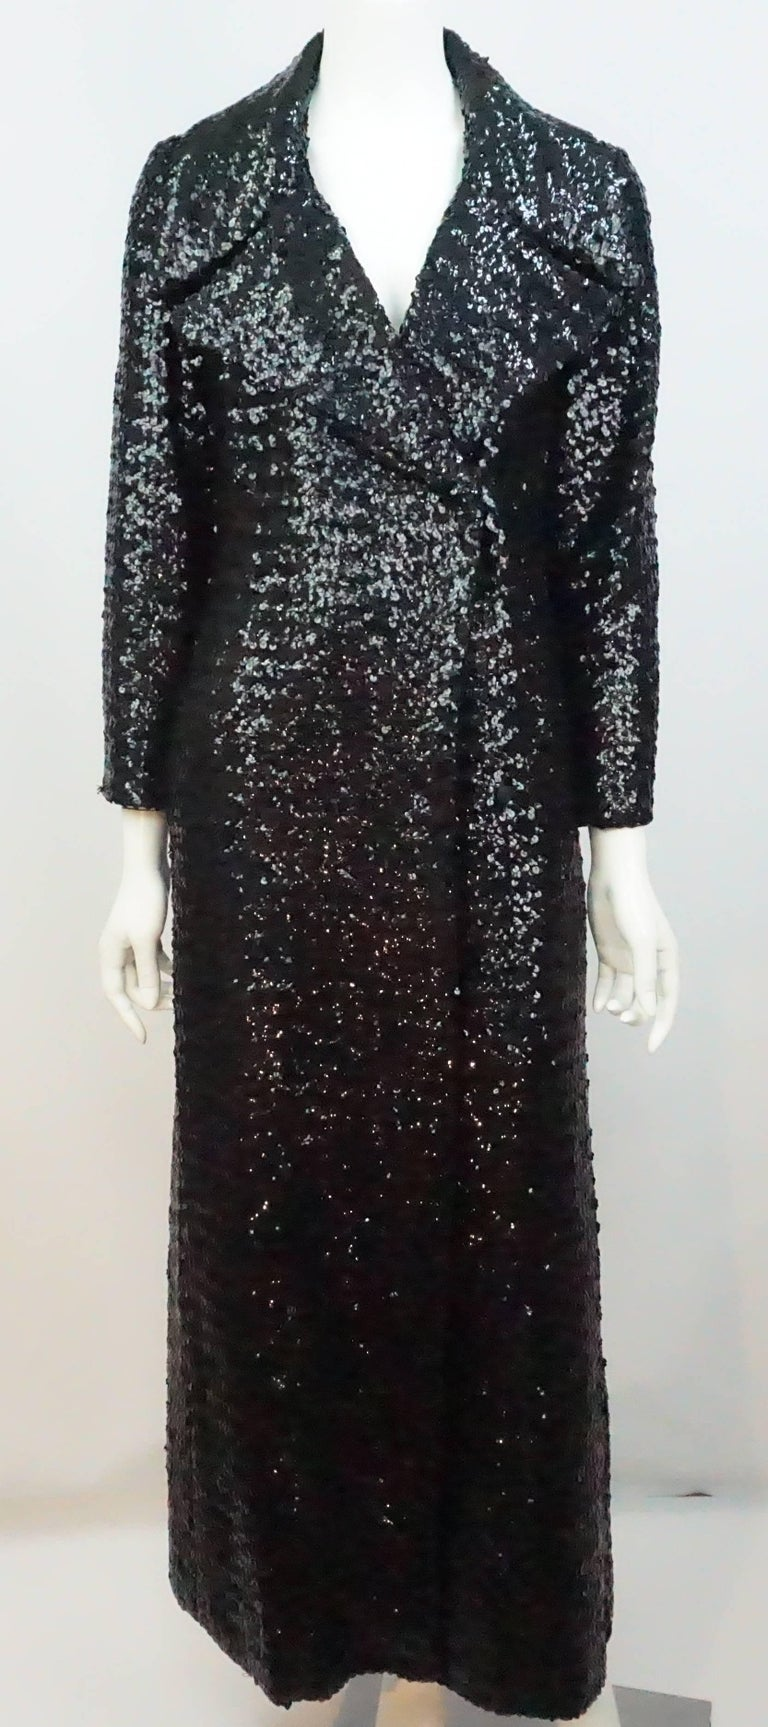 Vintage Black Sequin Full Length Trench Coat - M - Circa 70's For Sale 5